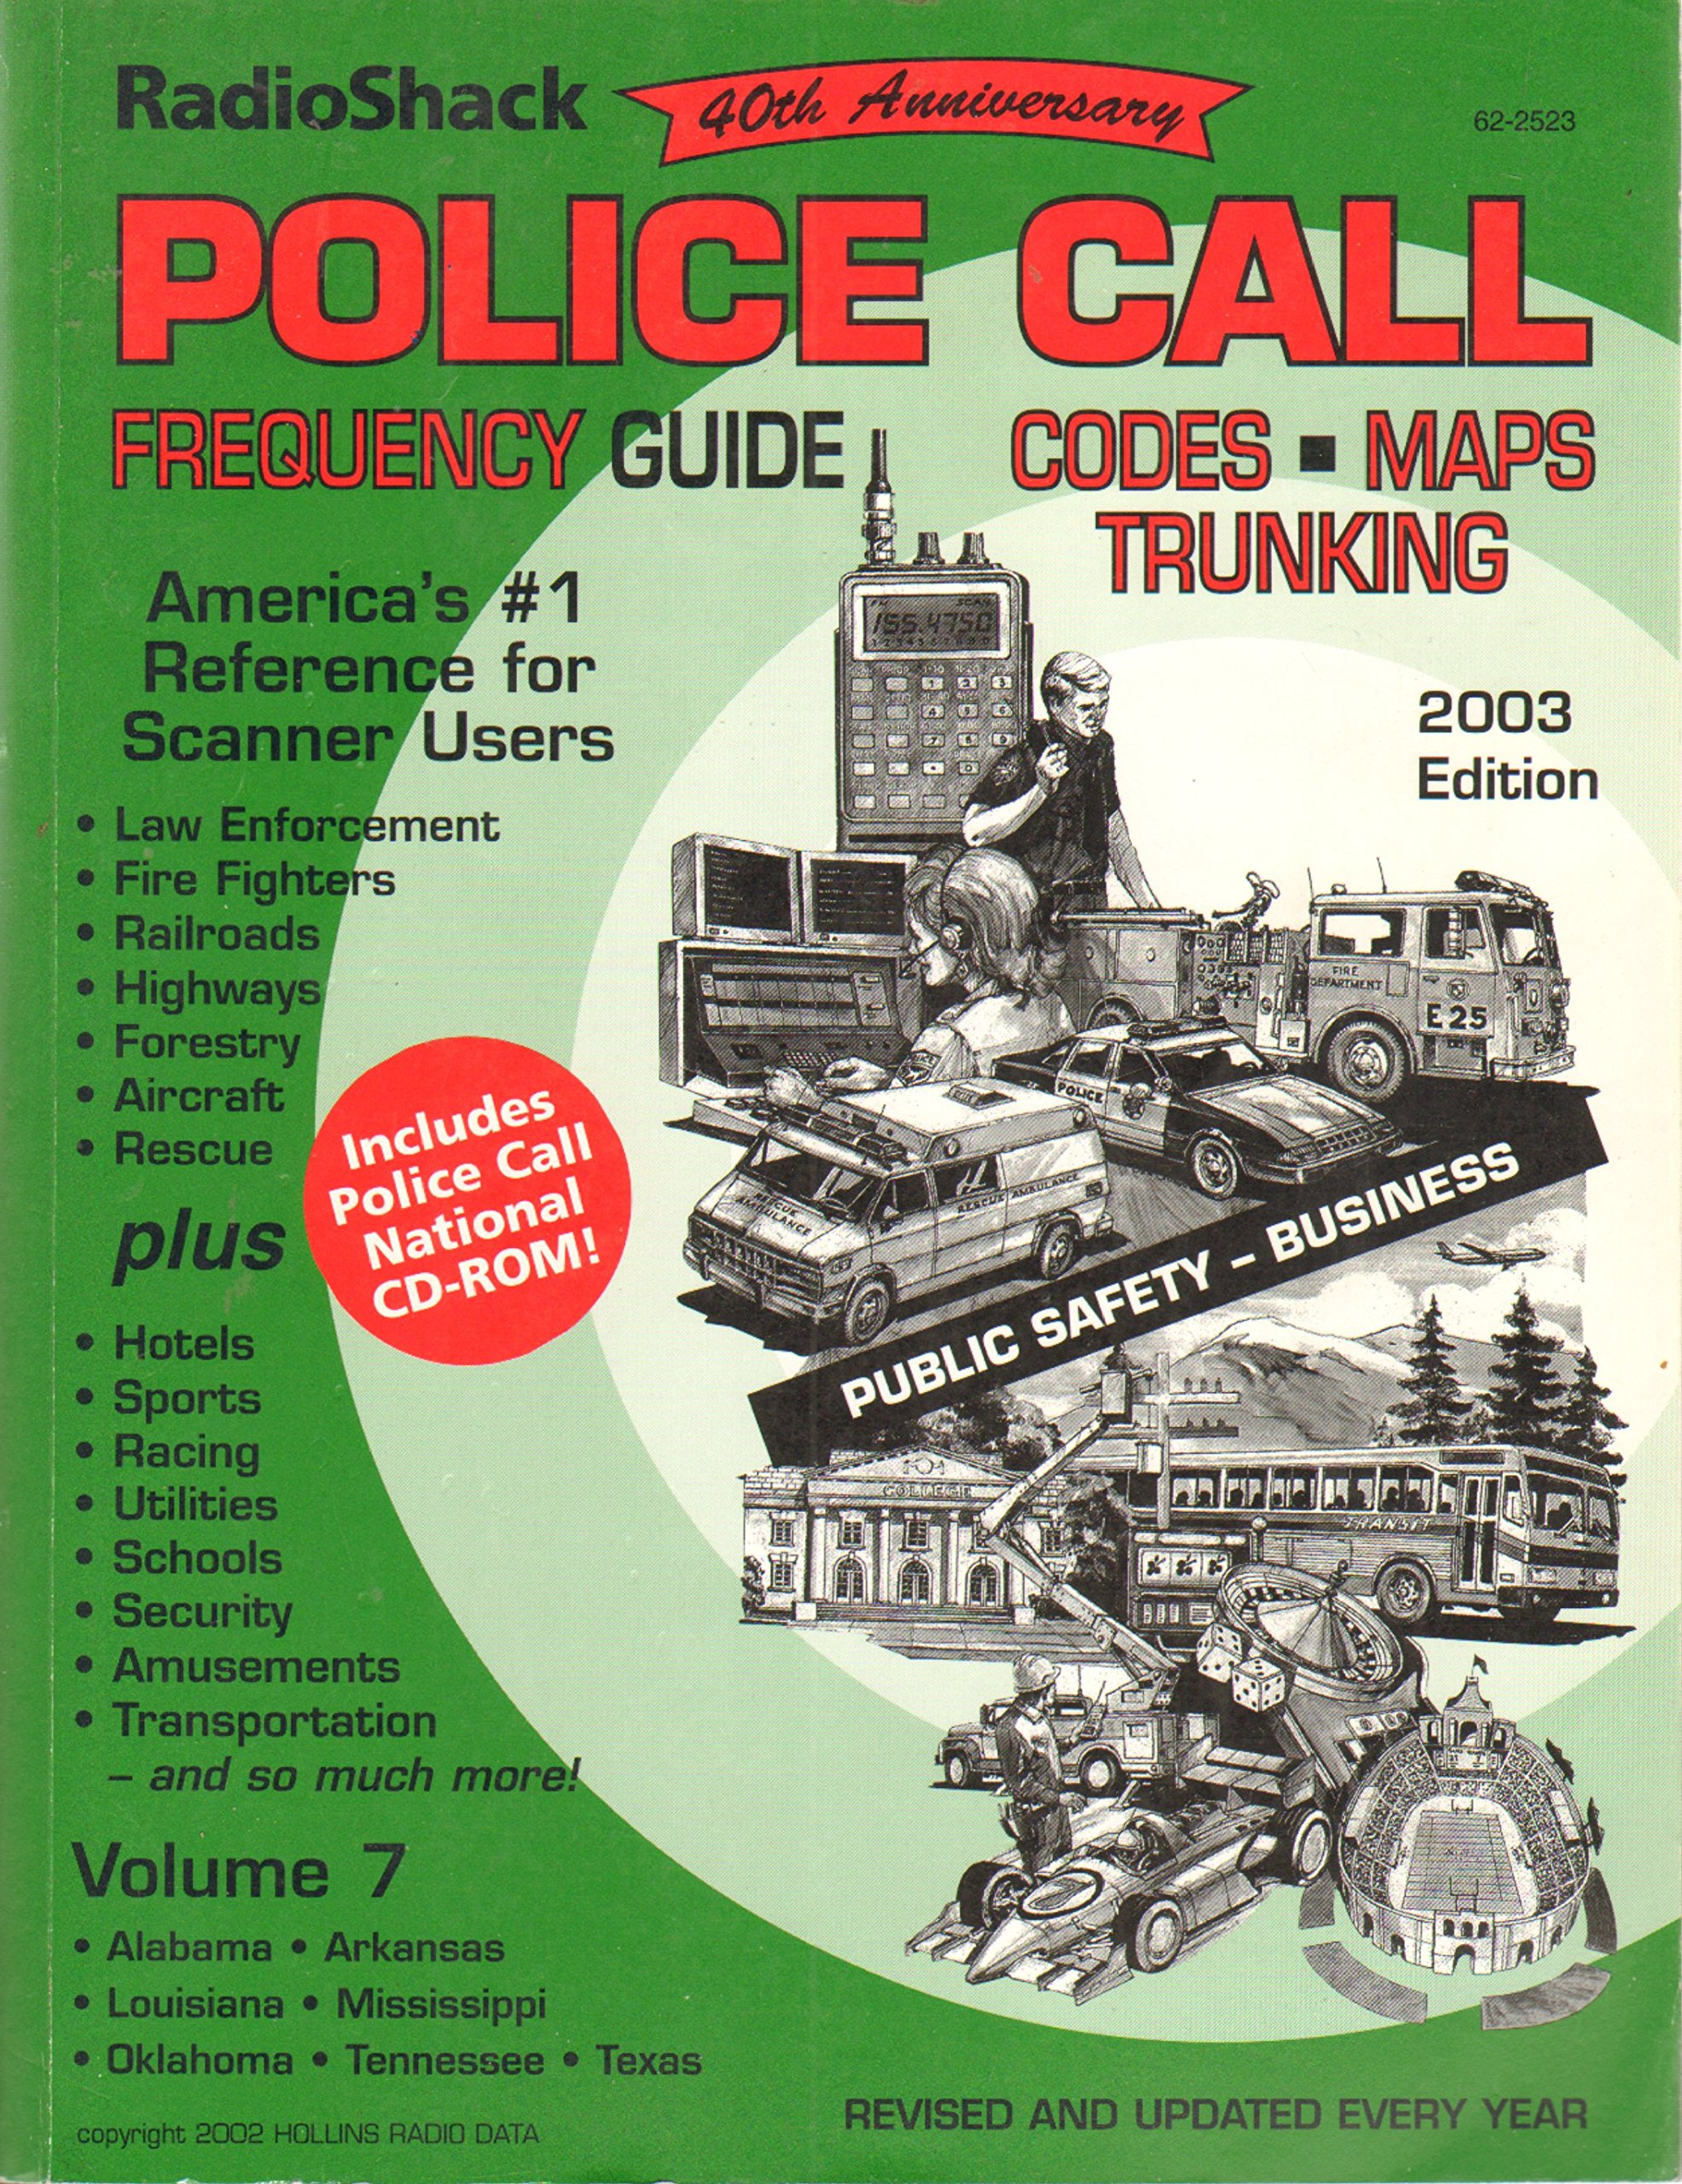 Police Call Frequency Guide (Codes, Maps, Trunking) (Radio Shack